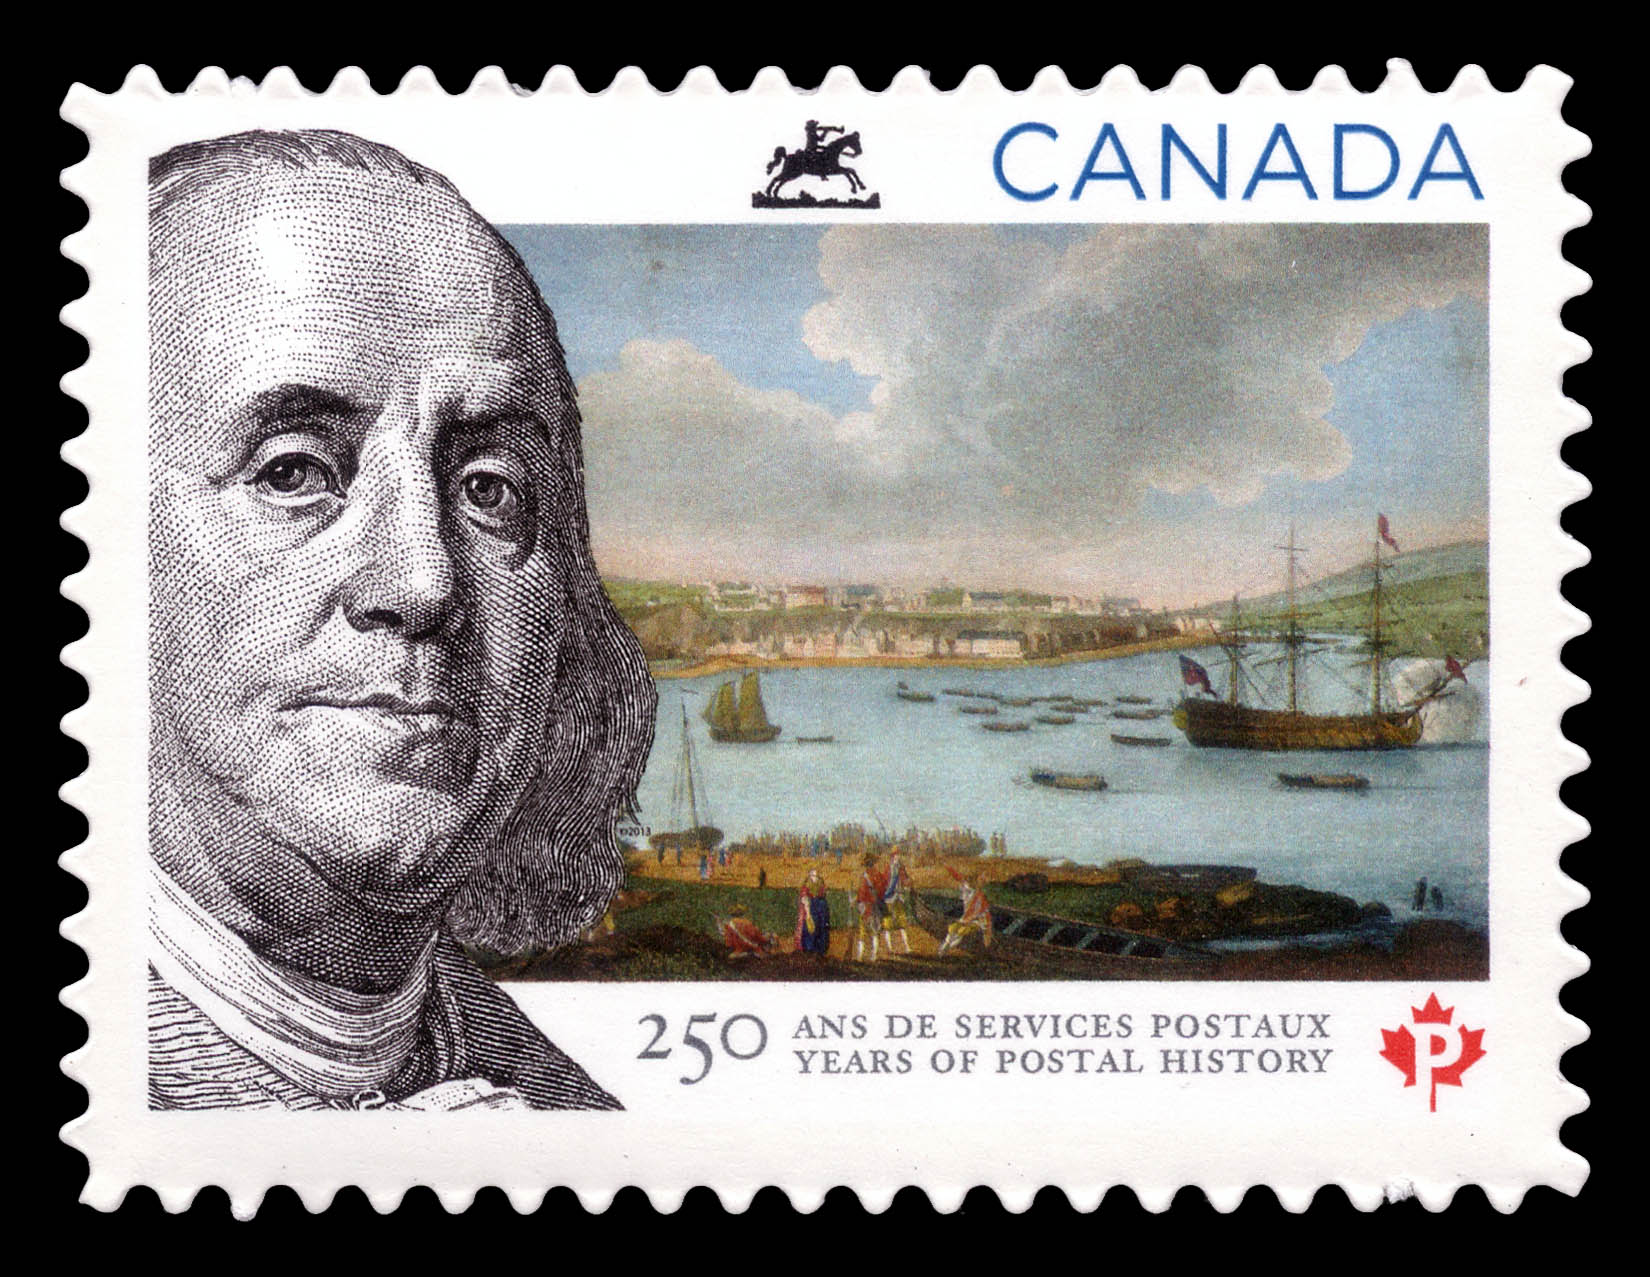 250 Years of Postal History Canada Postage Stamp